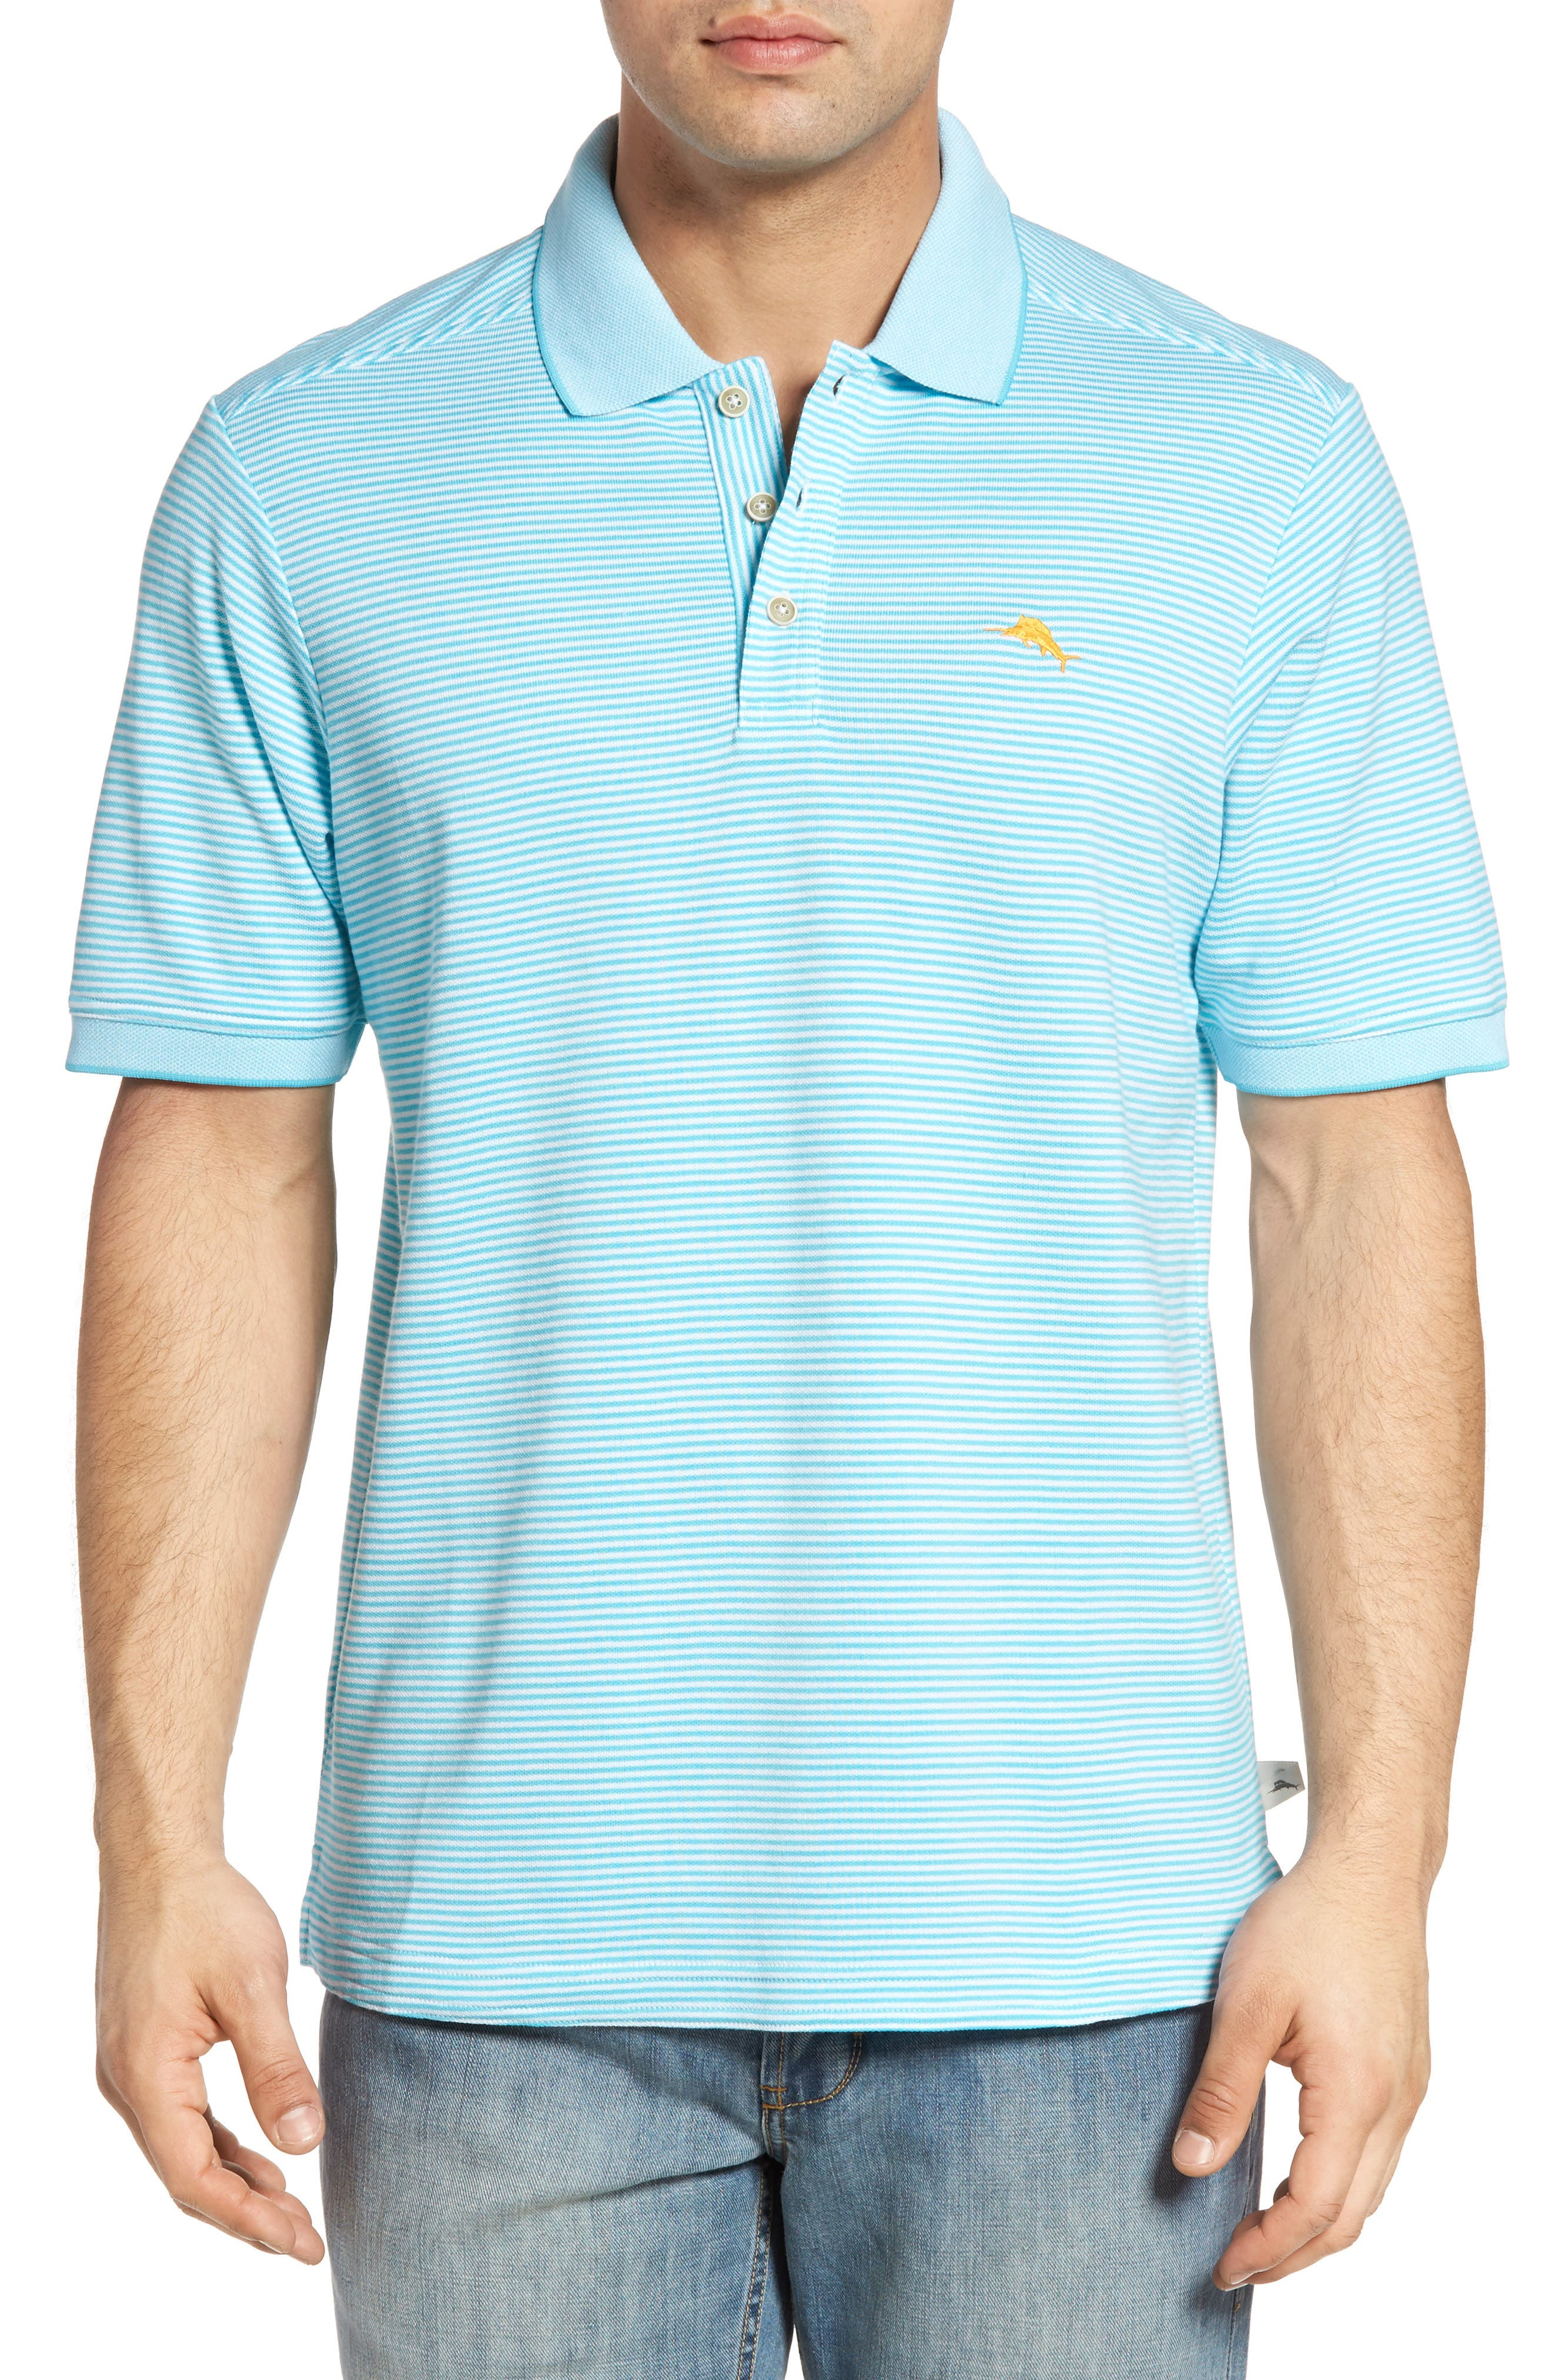 Tommy Bahama 'Emfielder' Stripe Pima Cotton Blend Polo (Big & Tall)